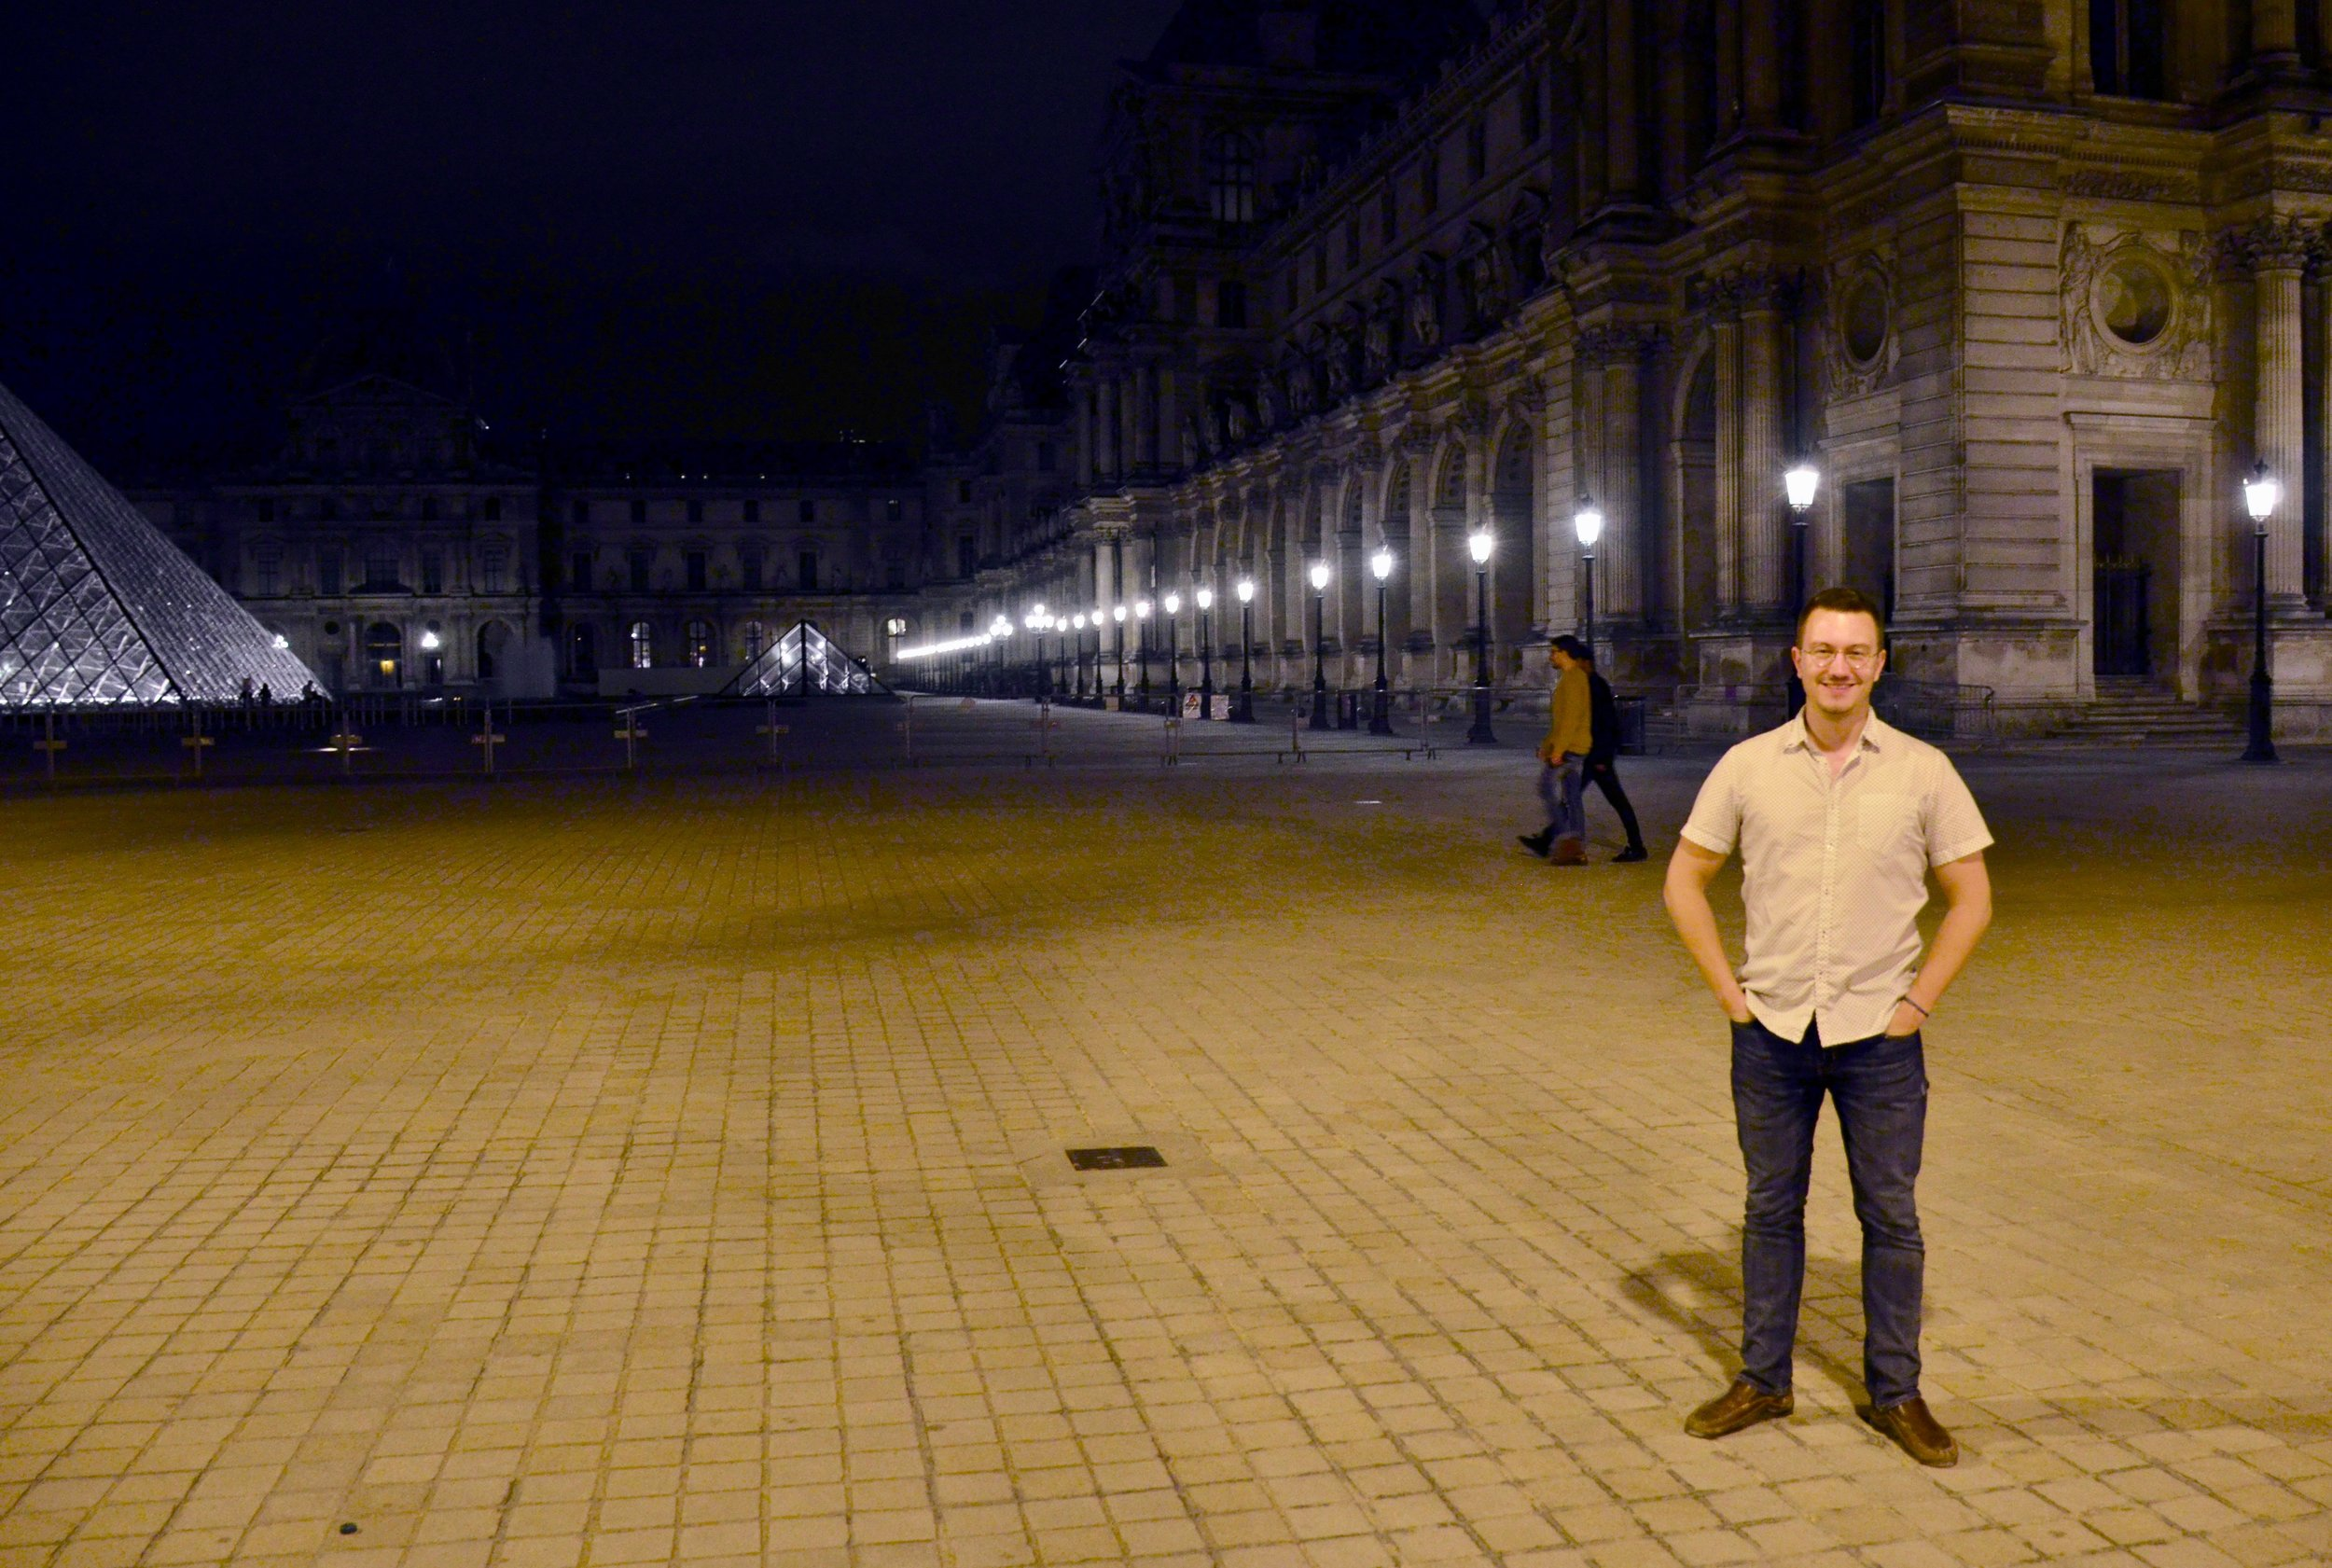 Corey de Tar in front of the Louvre